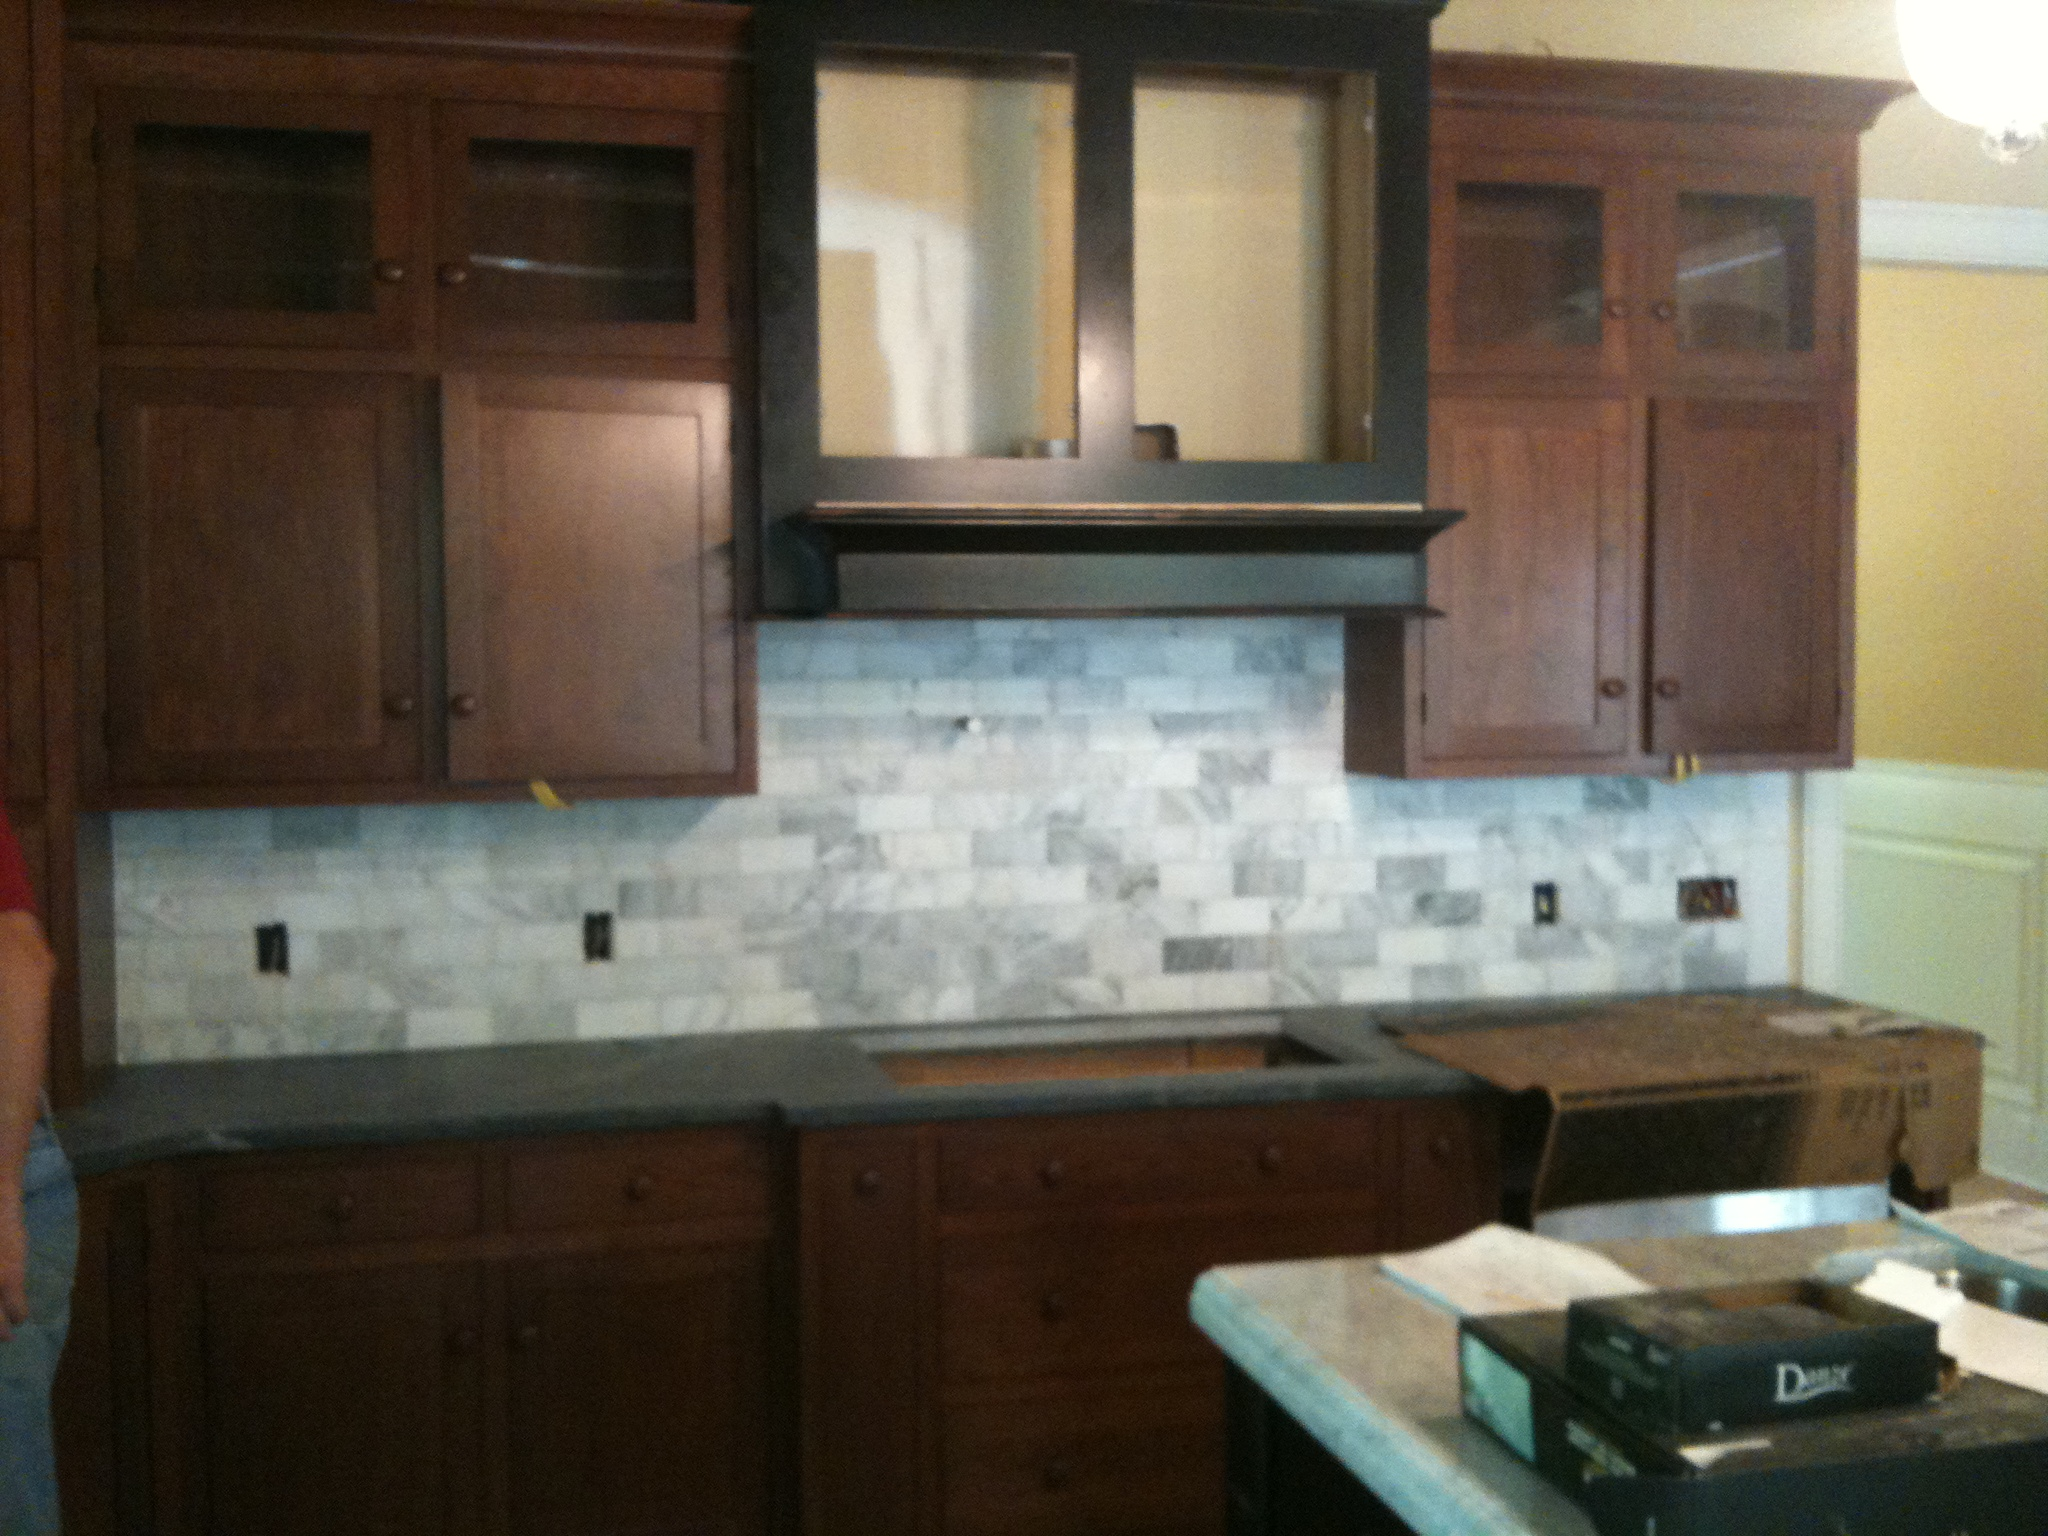 Kitchen cabinets kitchen design atlanta ga for Kitchen remodeling atlanta ga